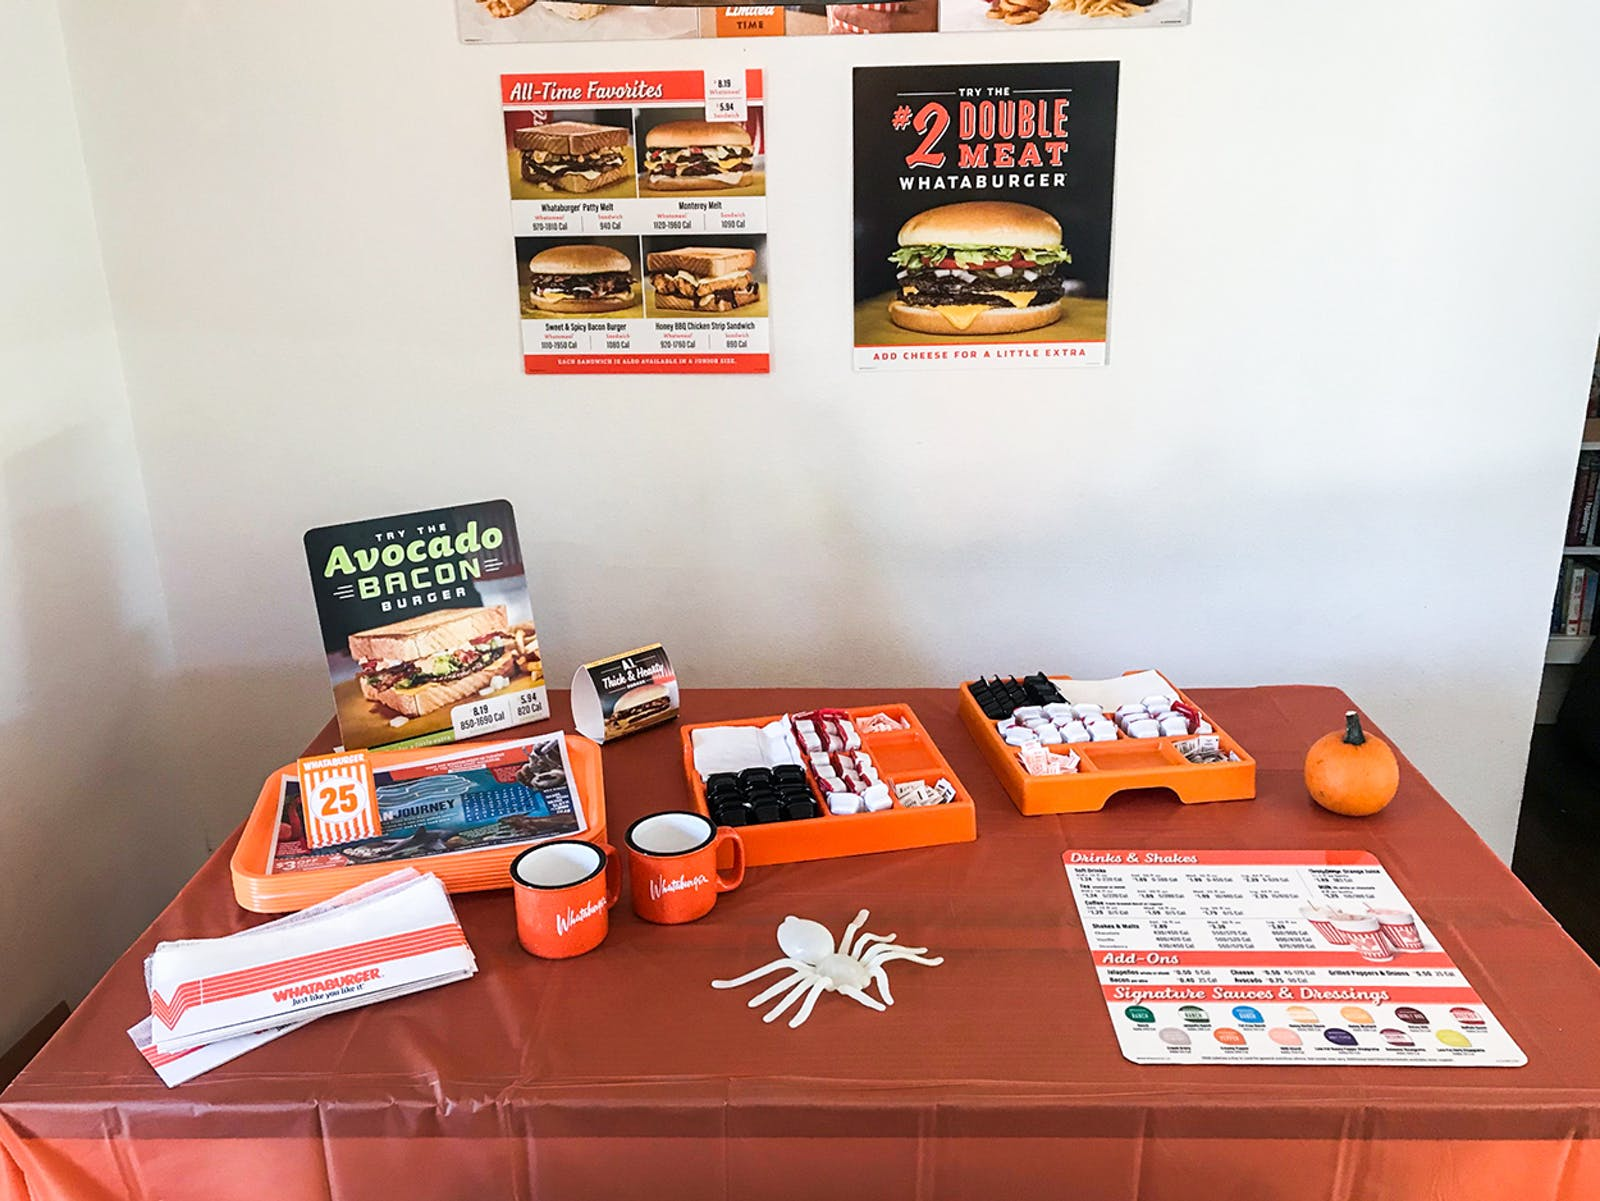 The couple got the help of a local franchise to get authentic Whataburger items like trays and menus for the party.